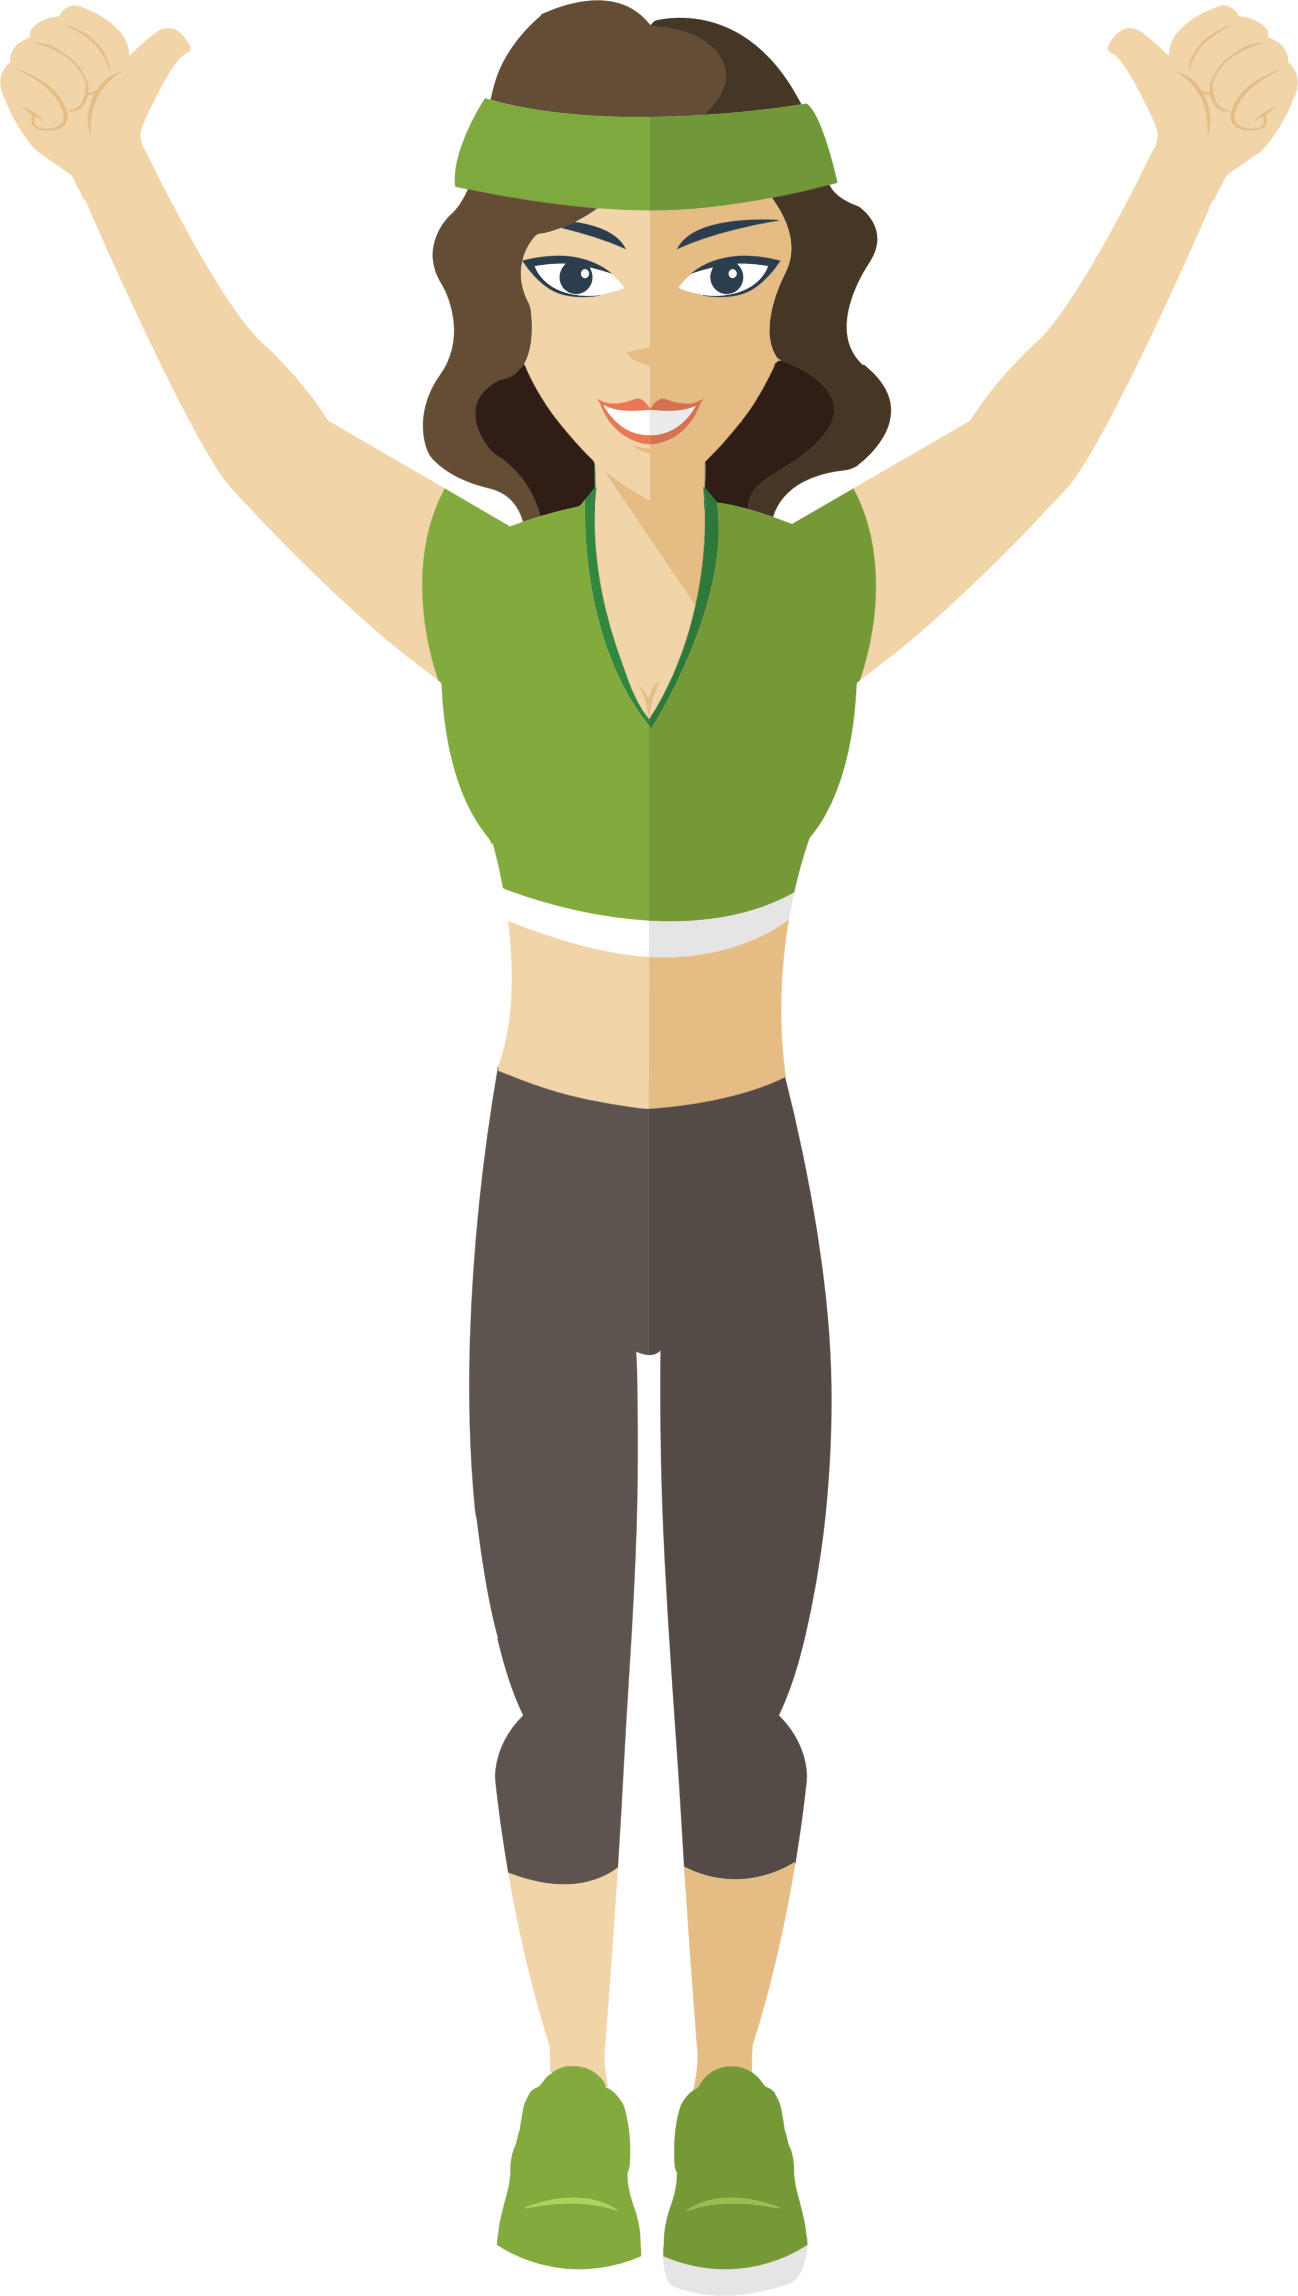 Exercising clipart character. Flat shaded fitness woman